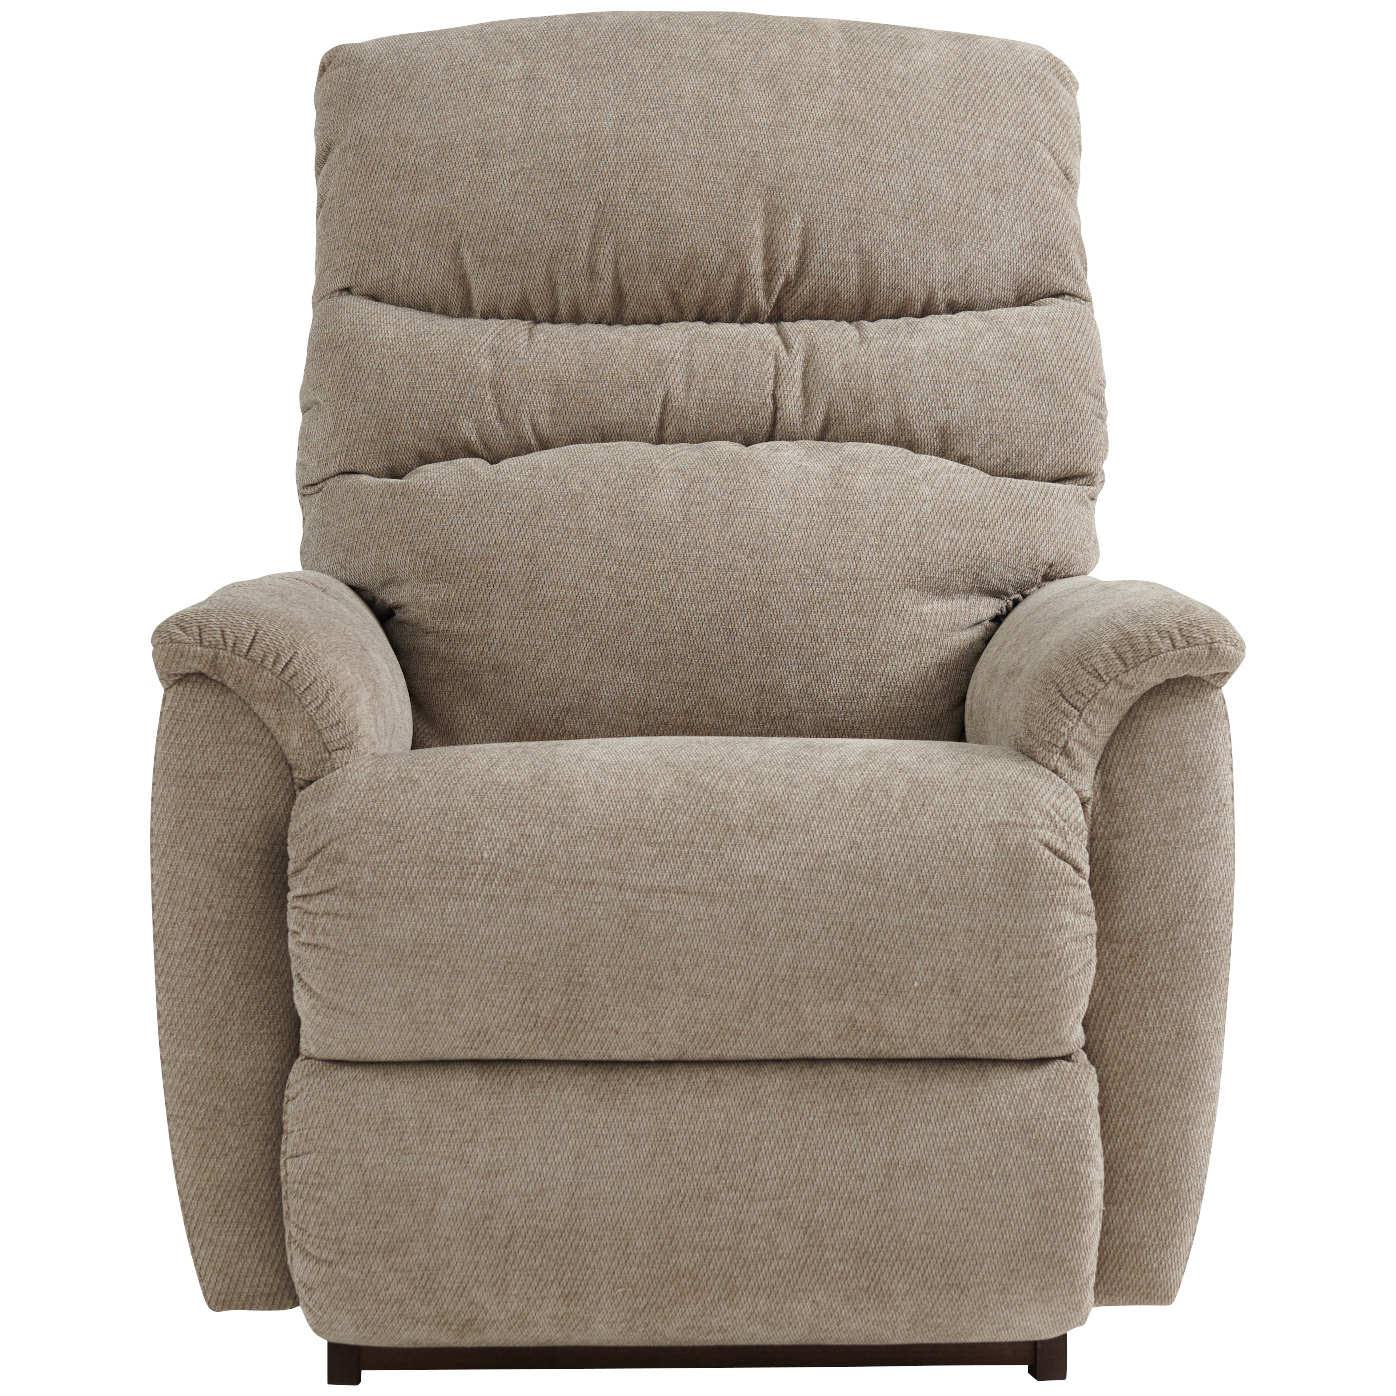 La-Z-Boy | Coleman Wicker Rocker Recliner Chair